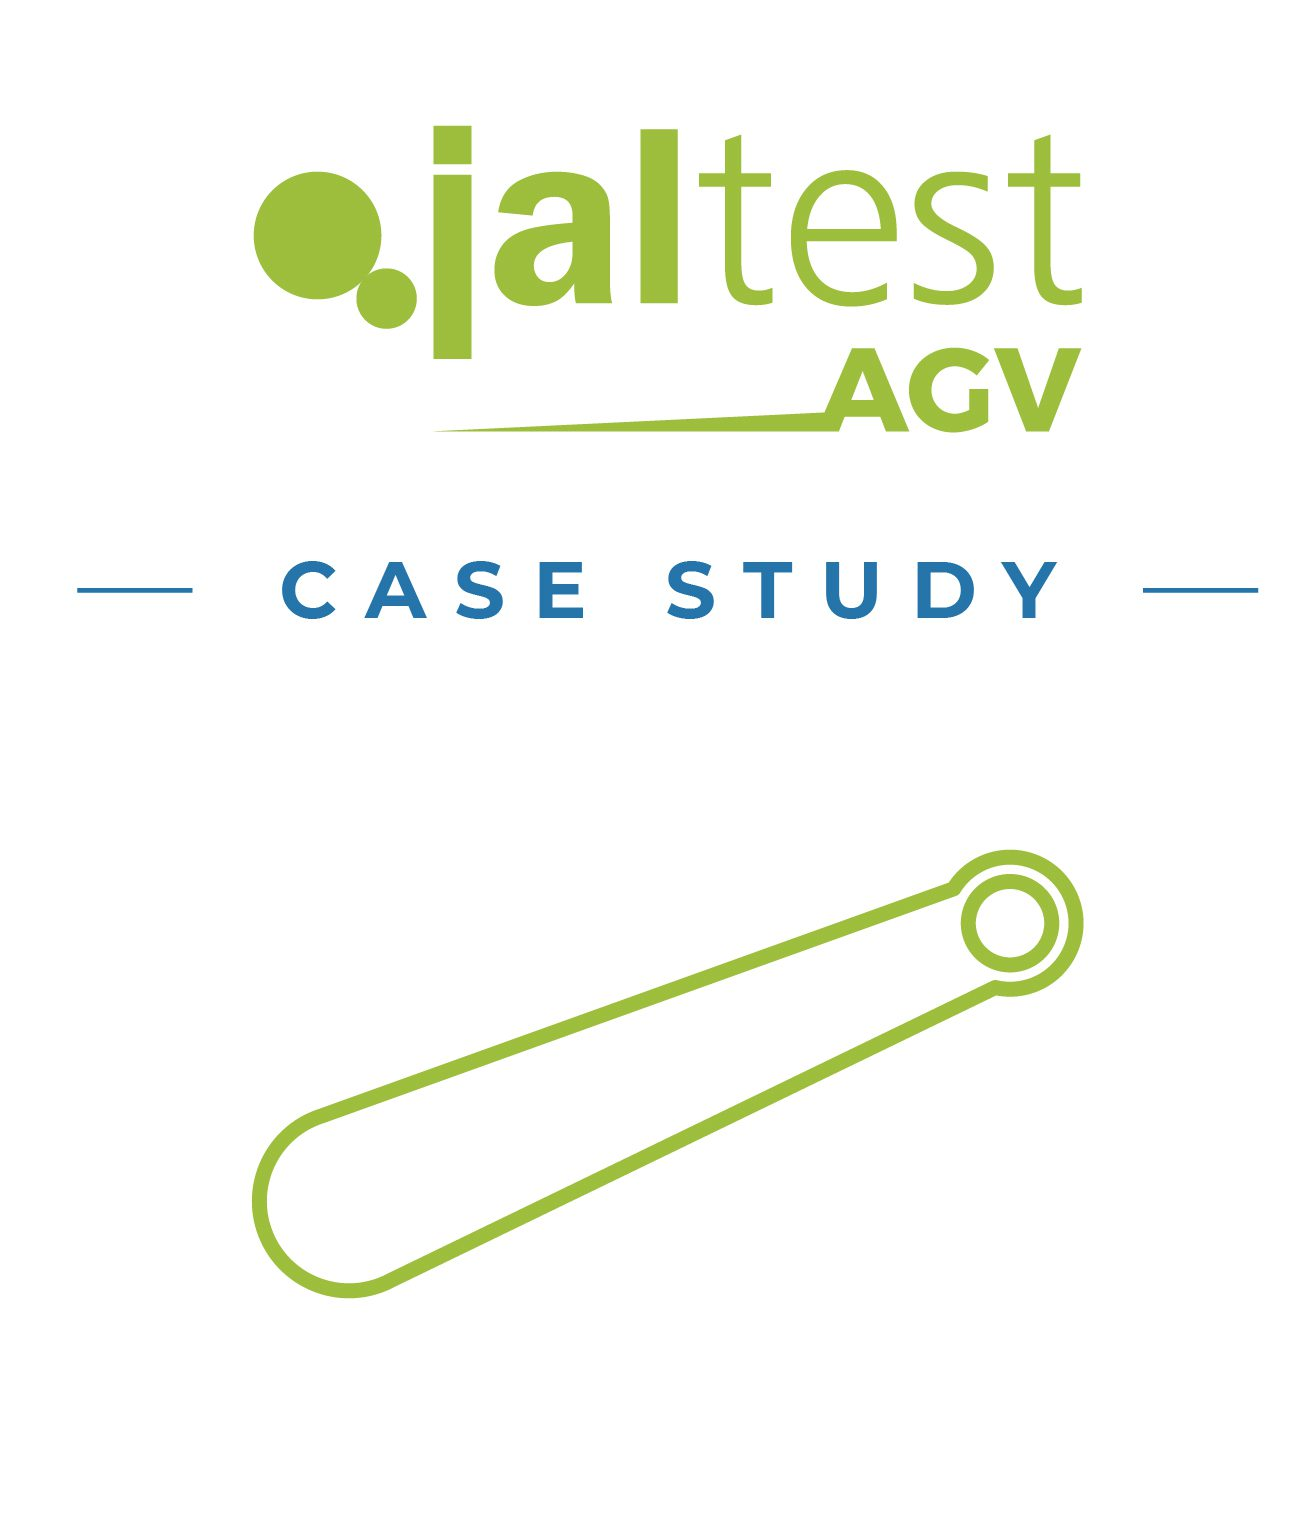 Jaltest AGV rear lift whitepaper